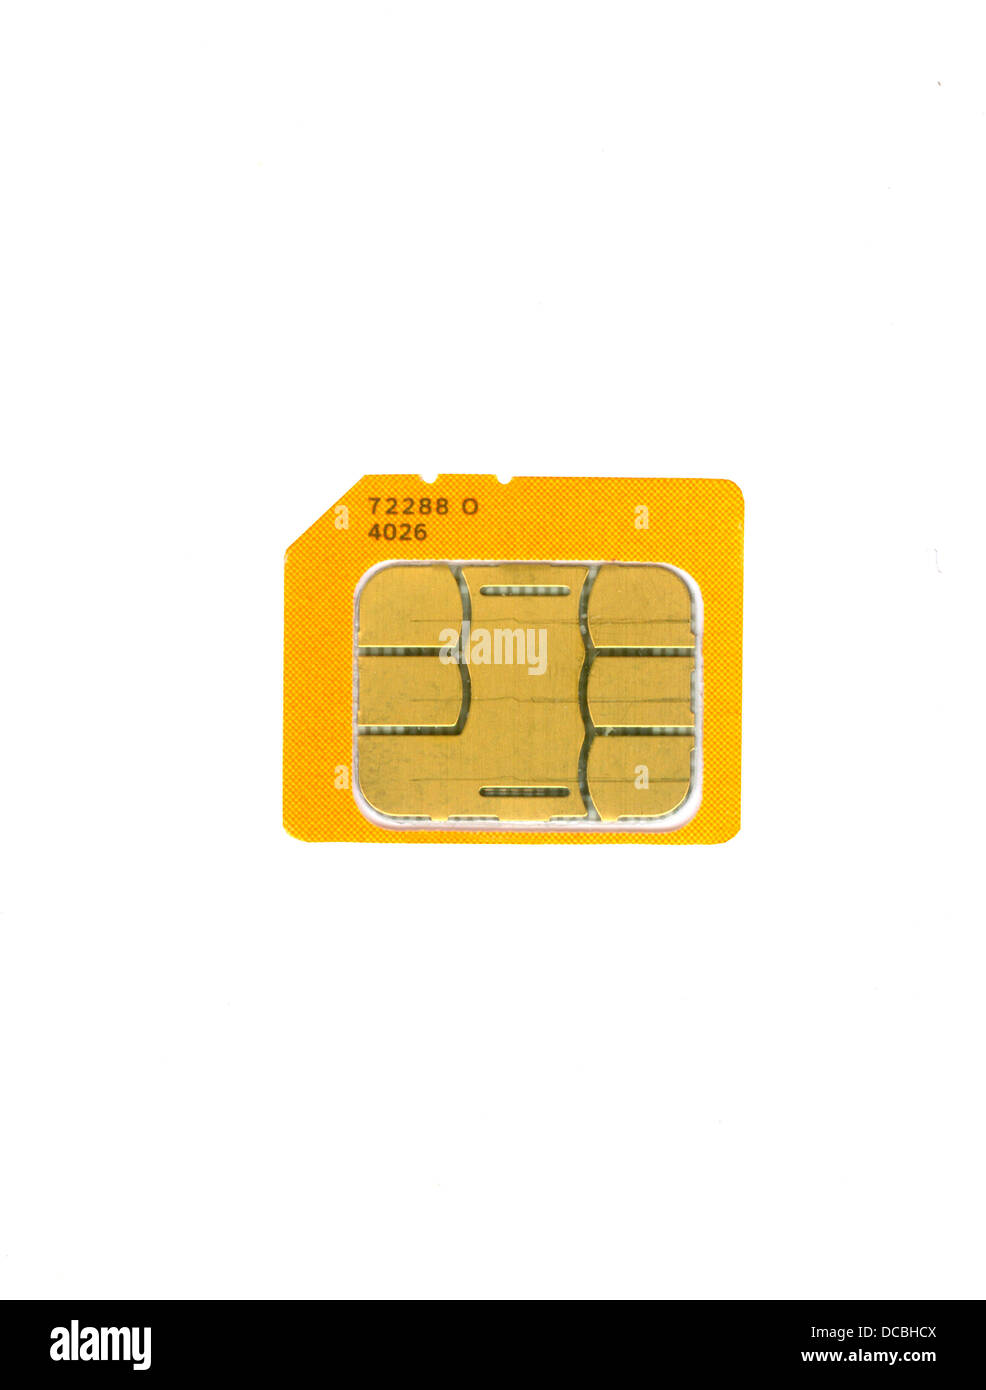 sim card circuit electronics technology memory mobile phone communication - Stock Image